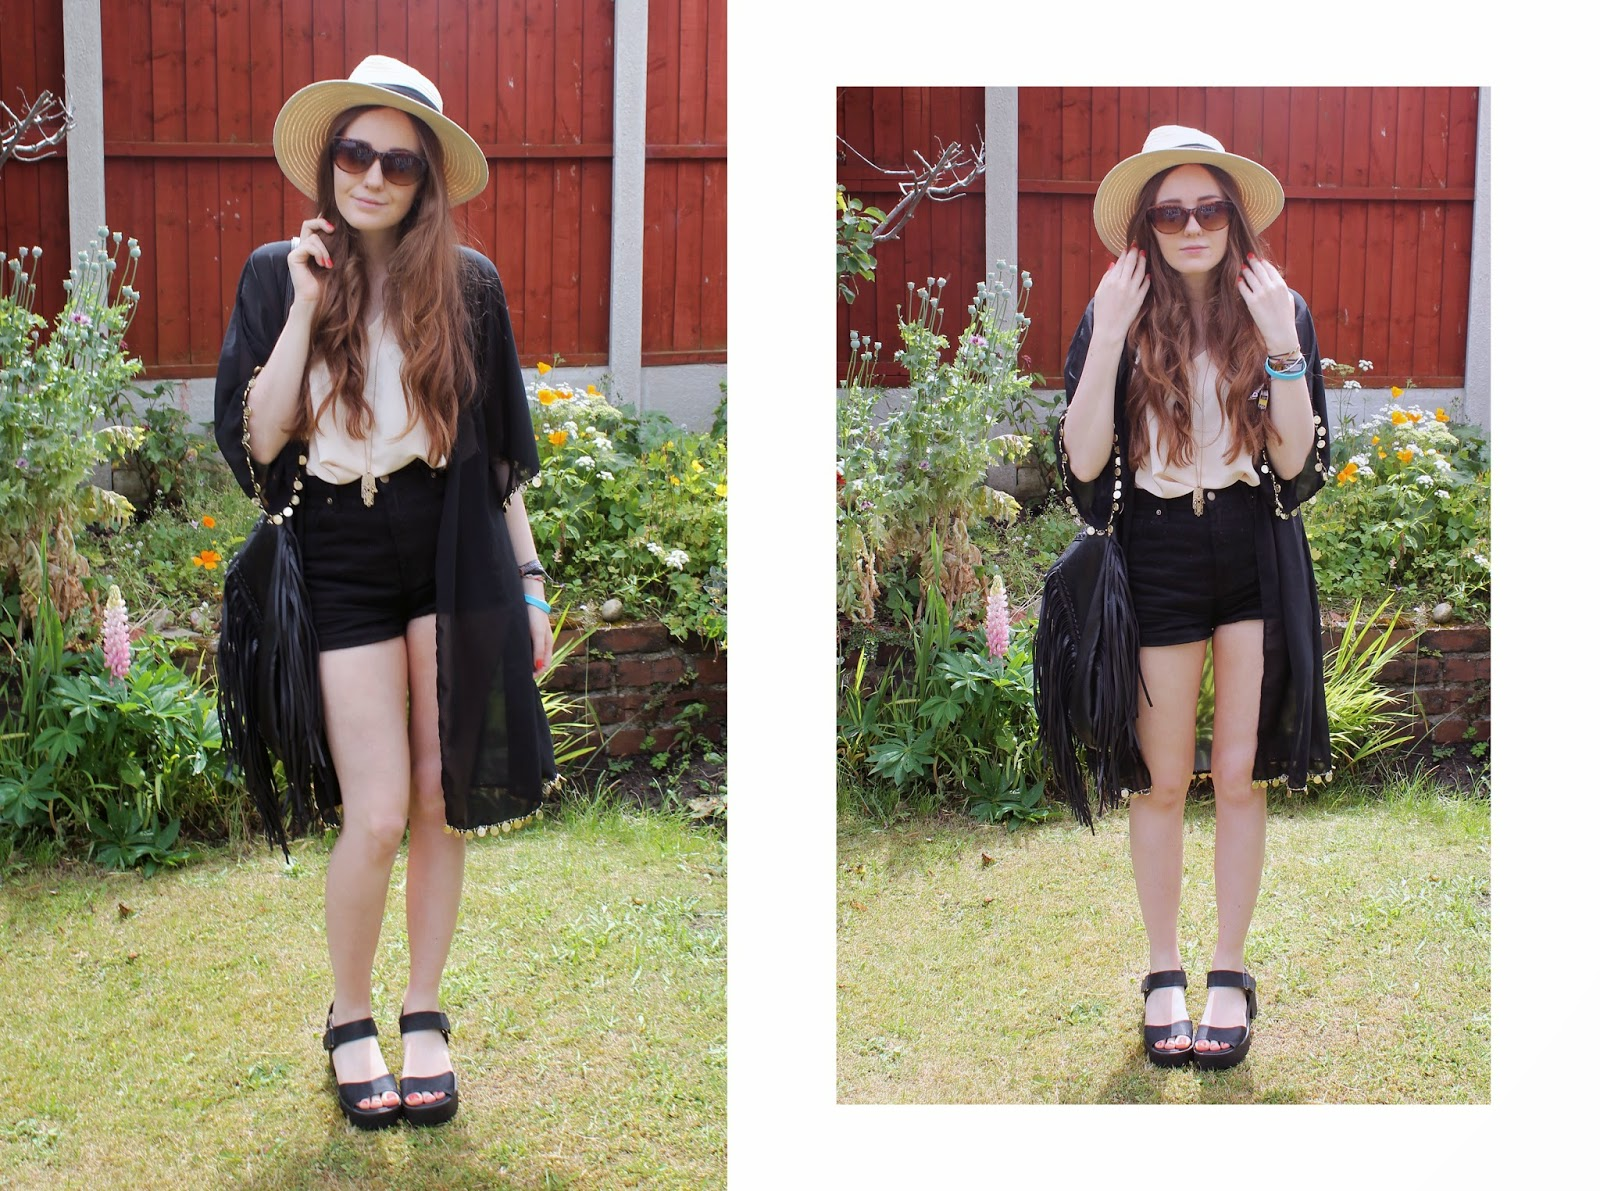 primark fedora tortoiseshell cat-eye sunglasses black handmade kimono with coin trim nude handmade cami top forever 21 black denim shorts primark fringed bag new look chunky black sandals summer 2014